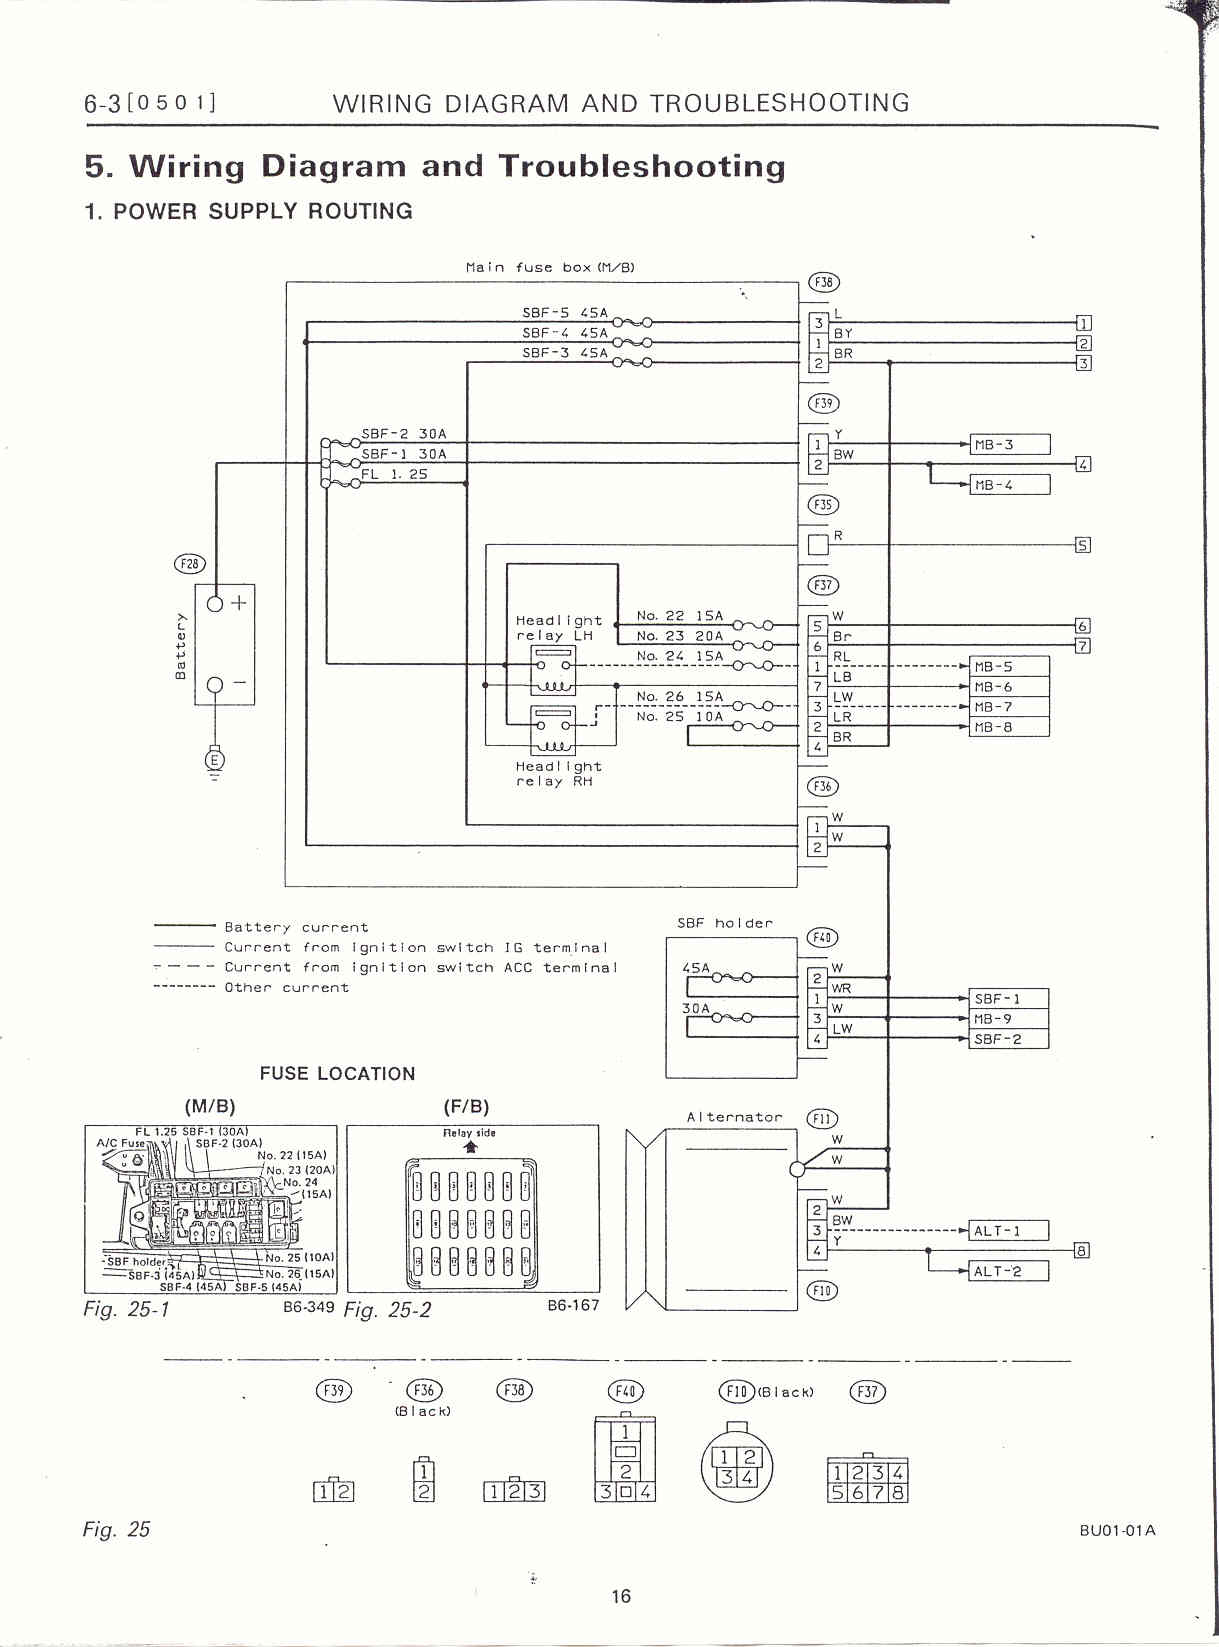 hight resolution of subaru alternator wiring diagram hecho wiring diagramsubaru alternator wiring diagram hecho wiring diagramssubaru alternator wiring diagram